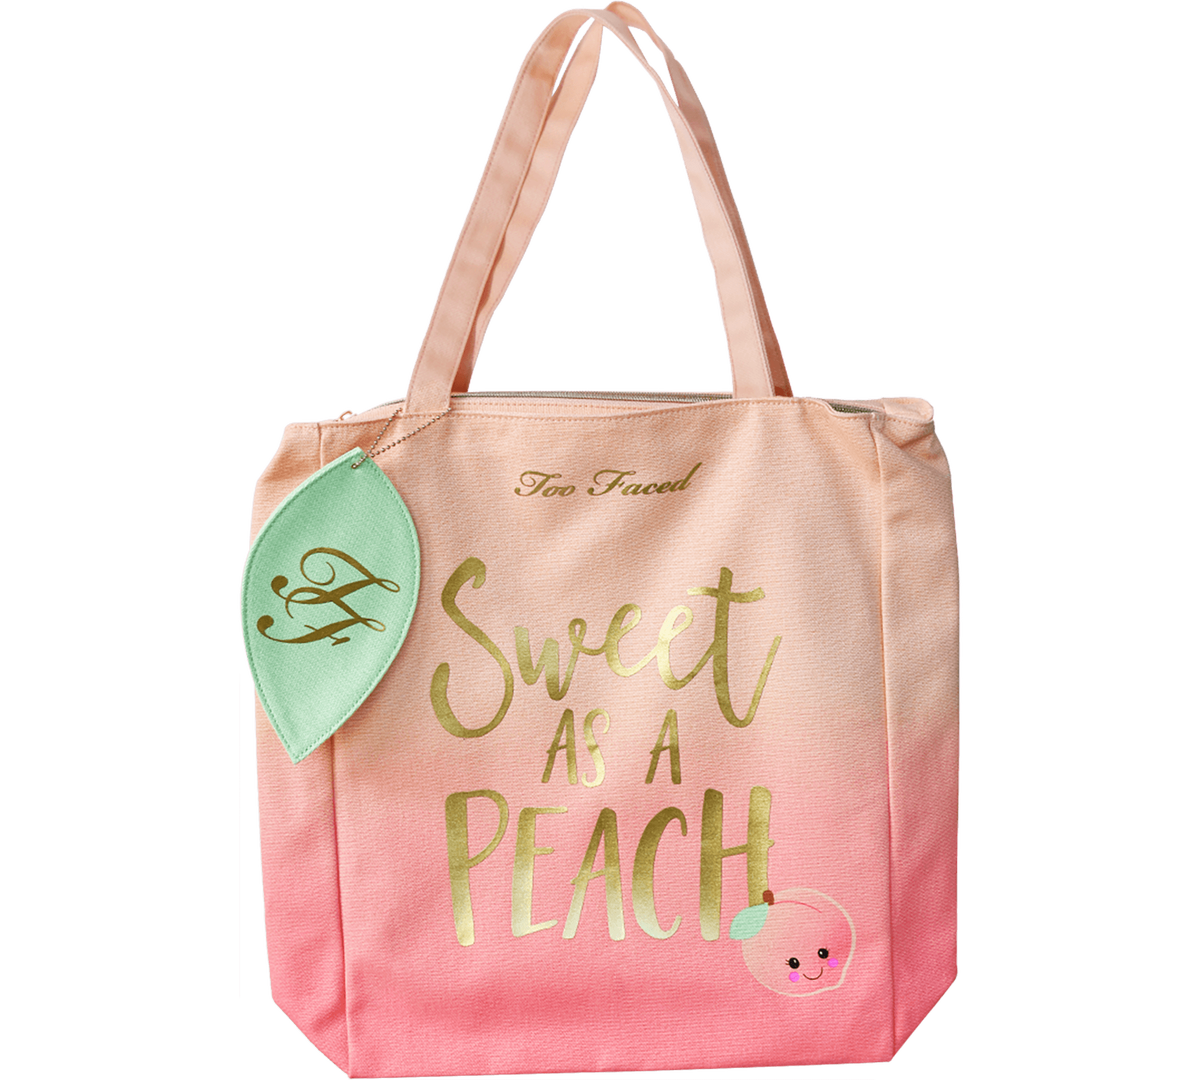 banner free download Transparent bags tote. Sweet as a peach.